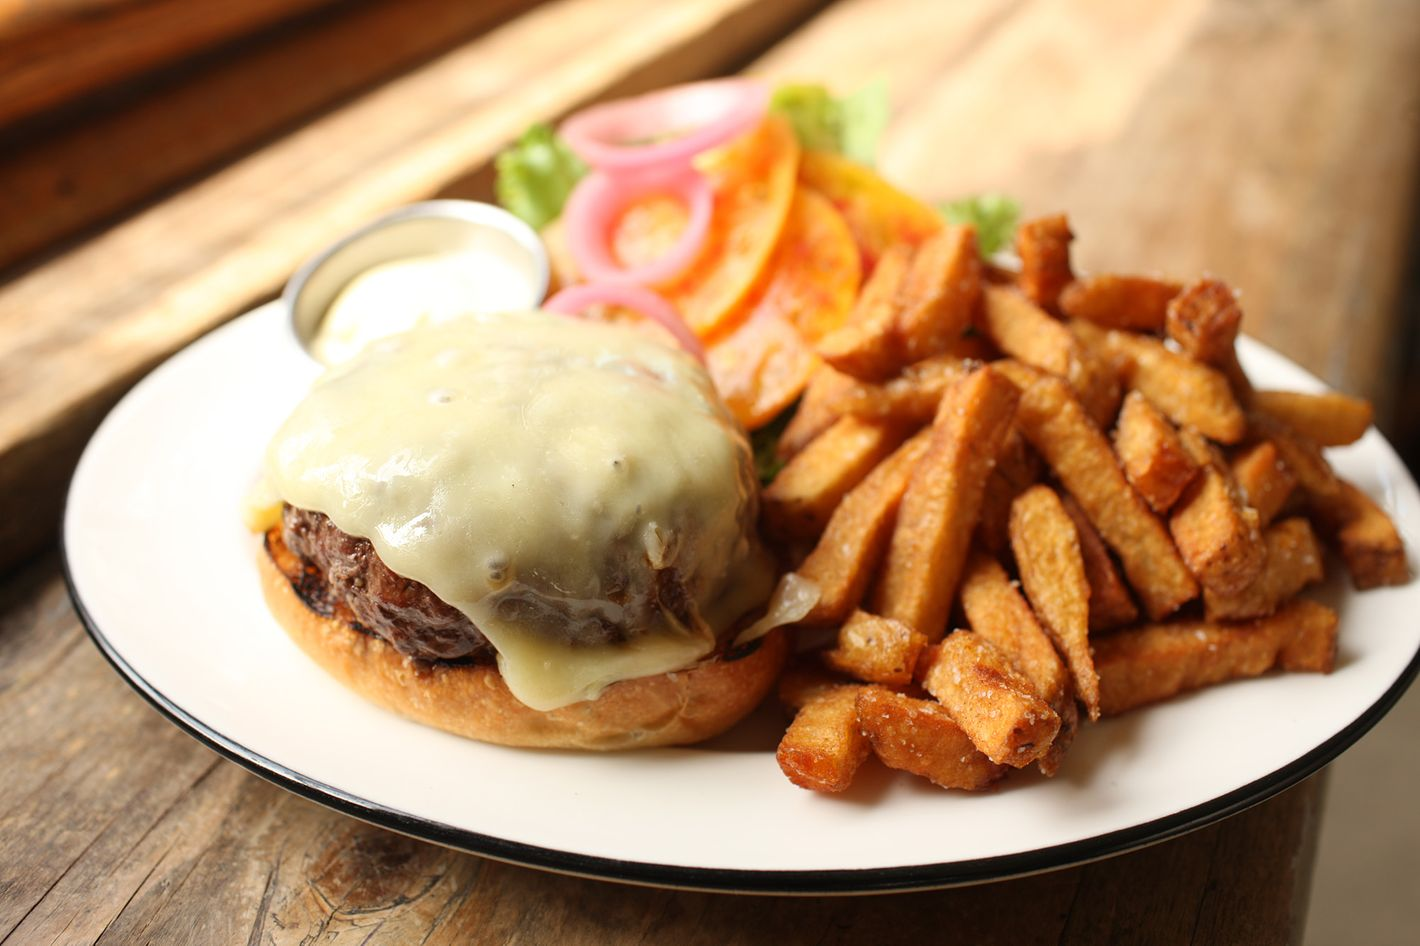 Diner's burger and fries.